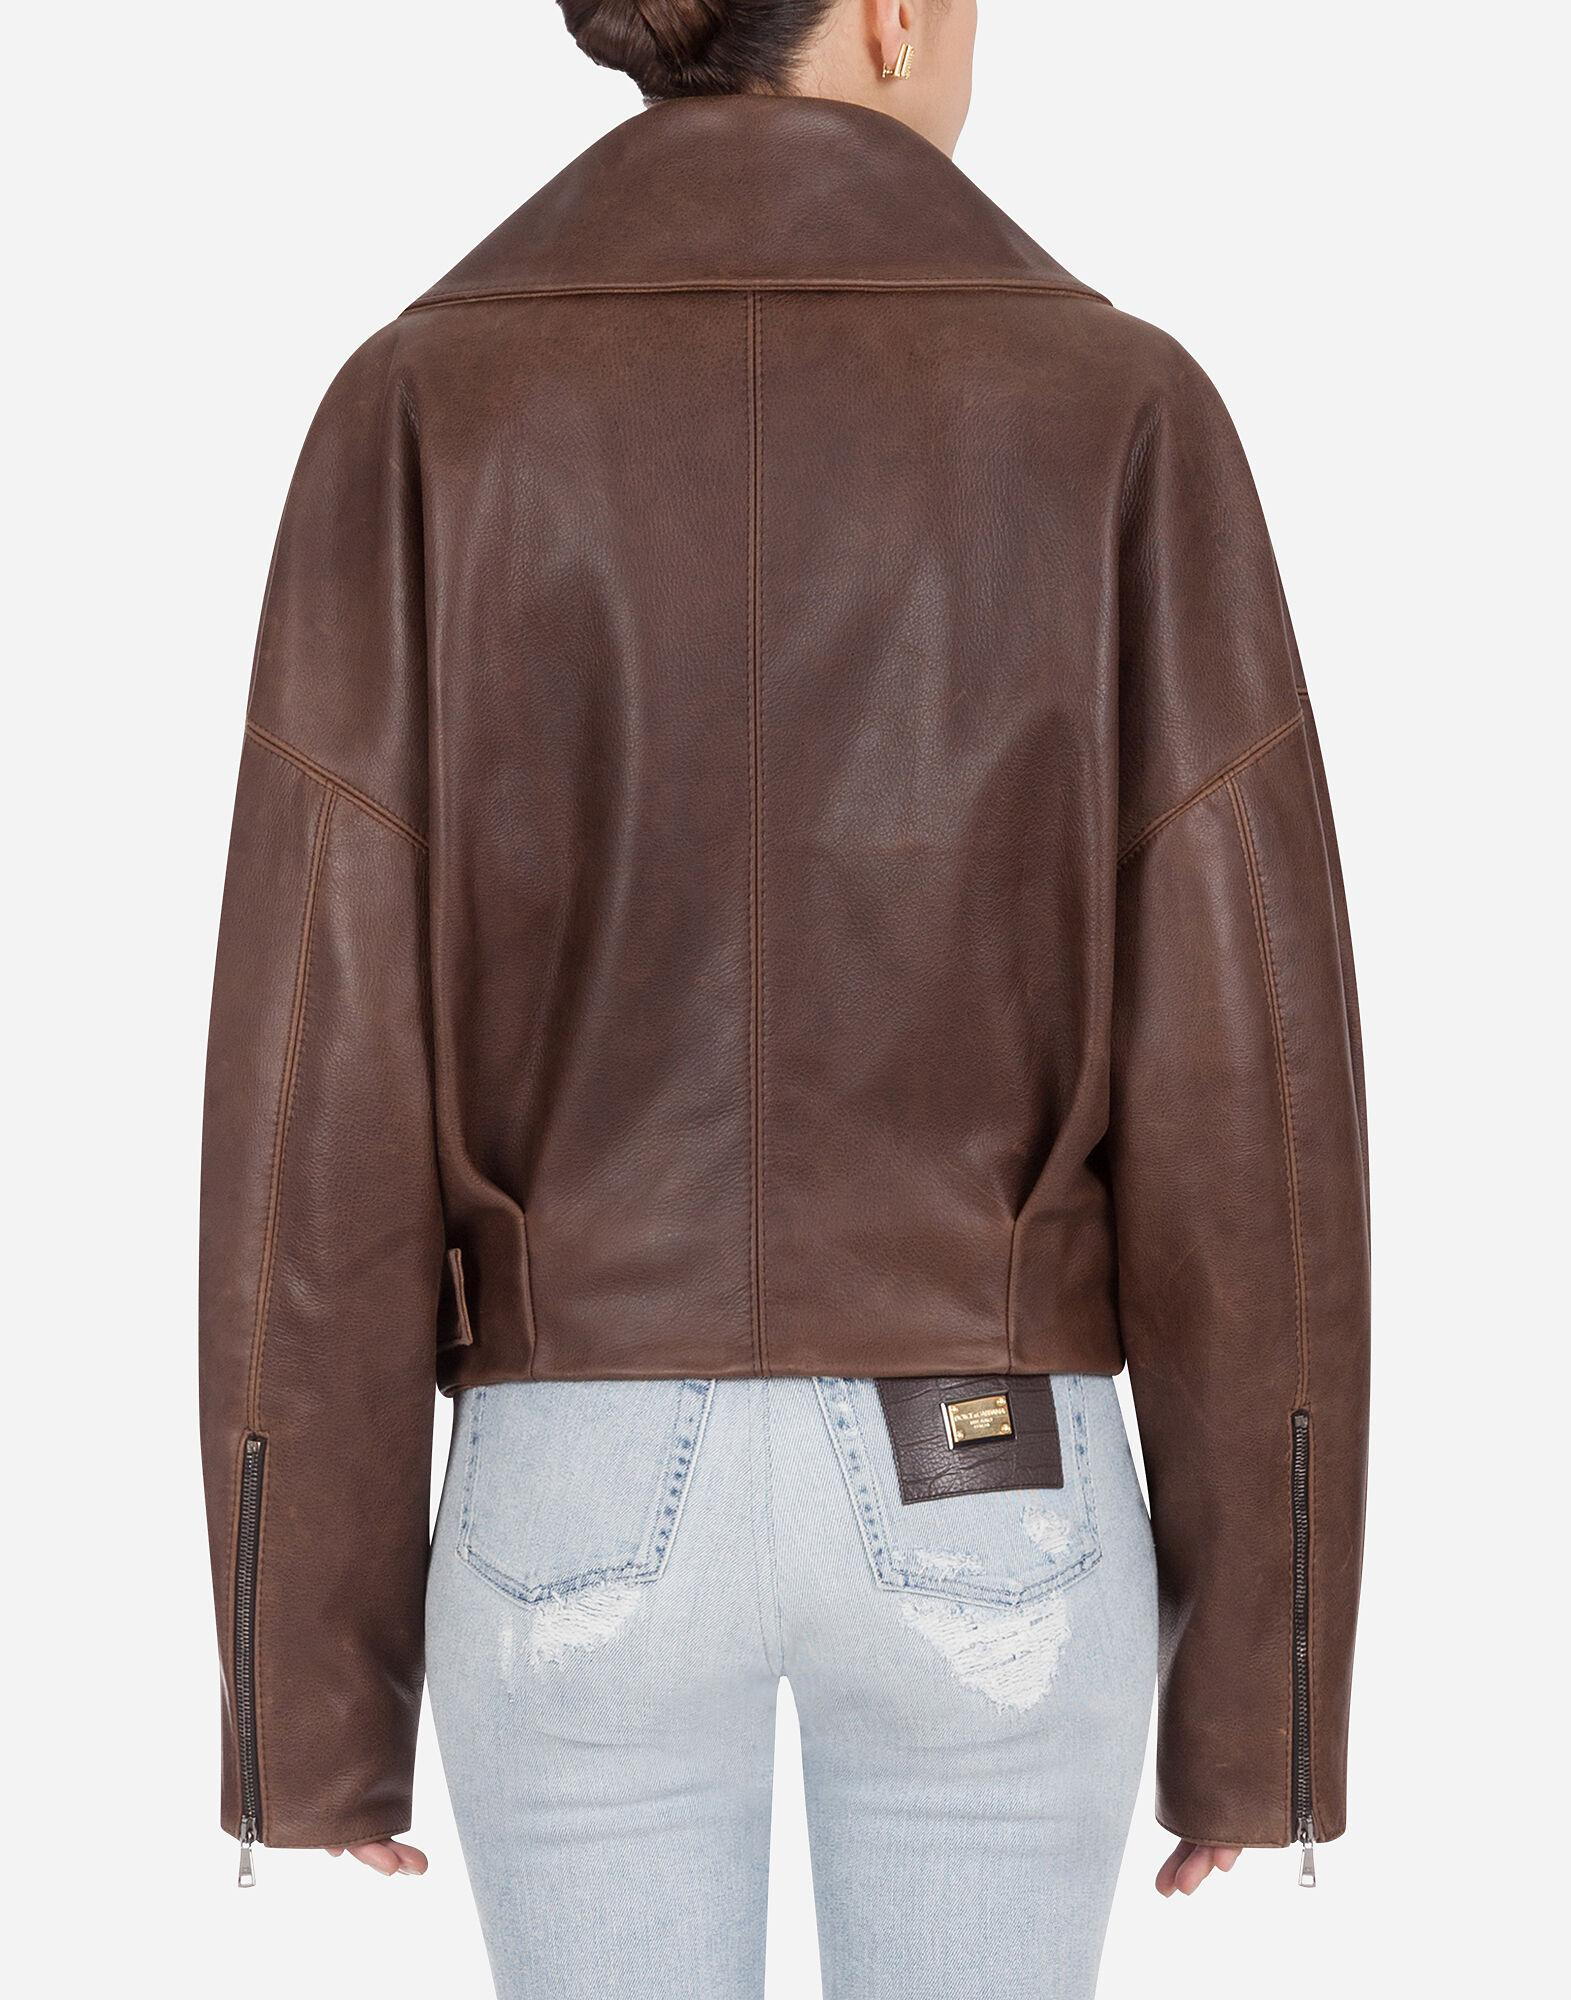 Jacket in hammered leather